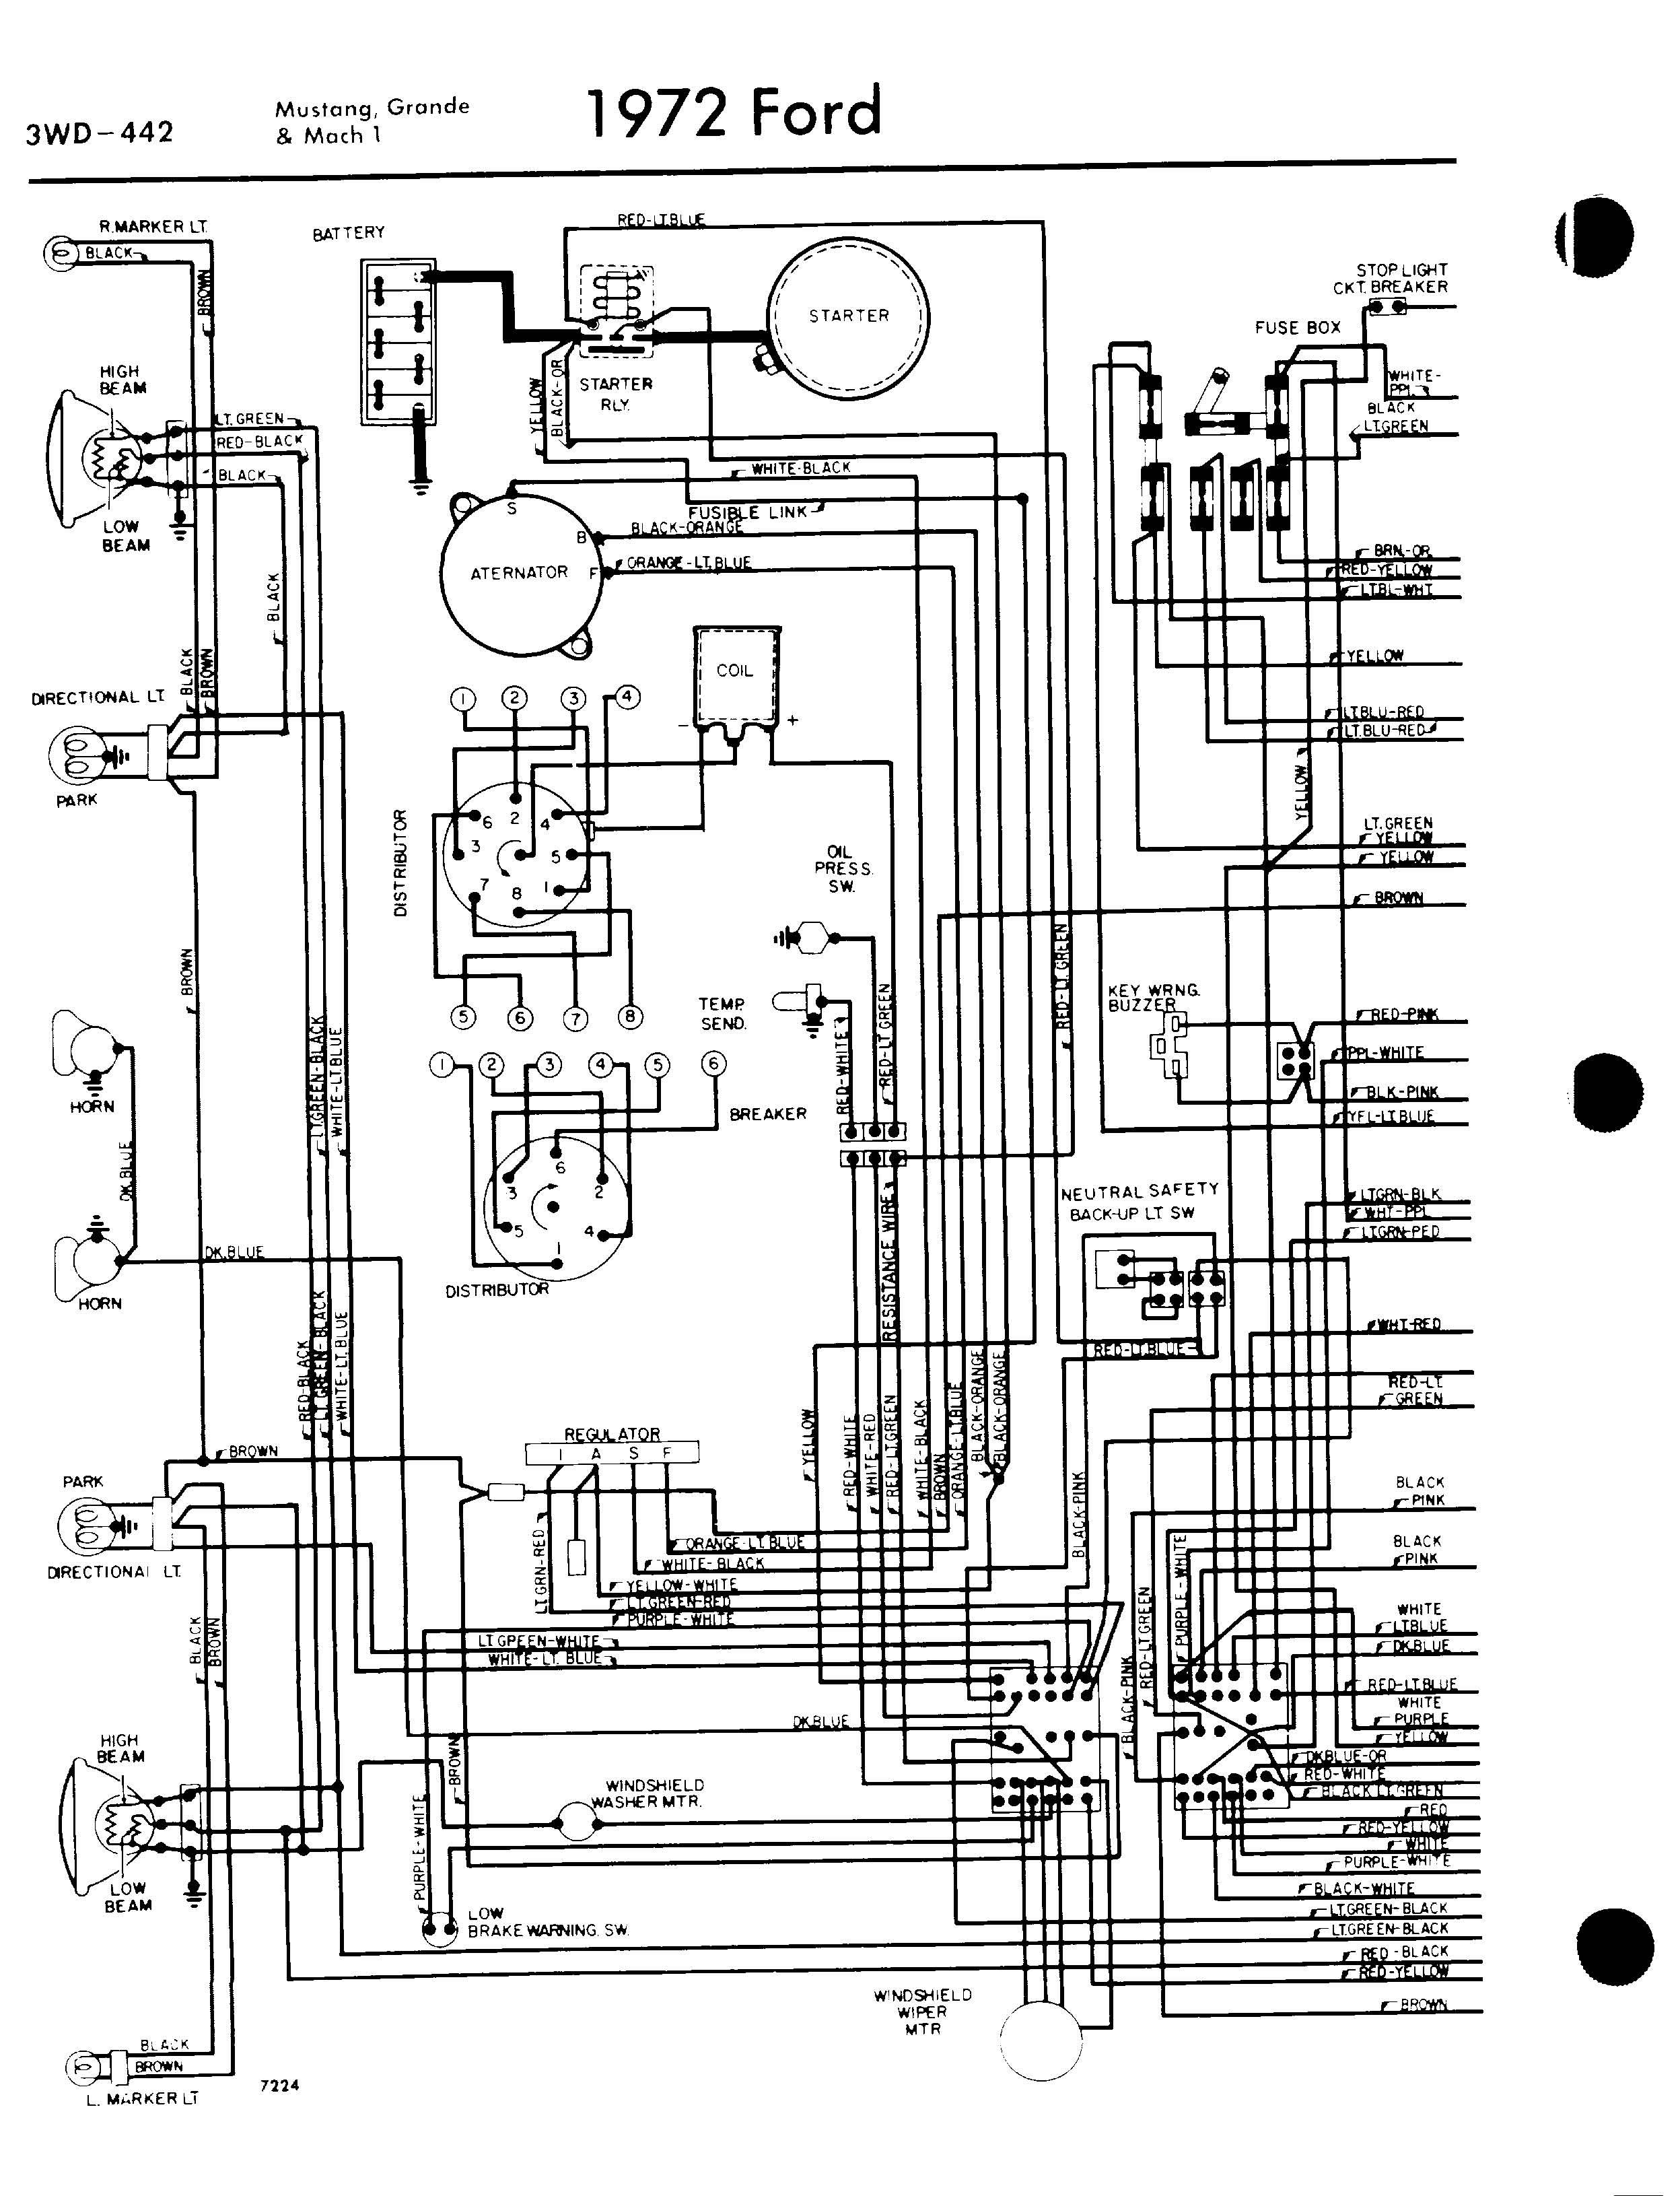 Mustang Alternator Wiring Diagram All Wiring Diagram